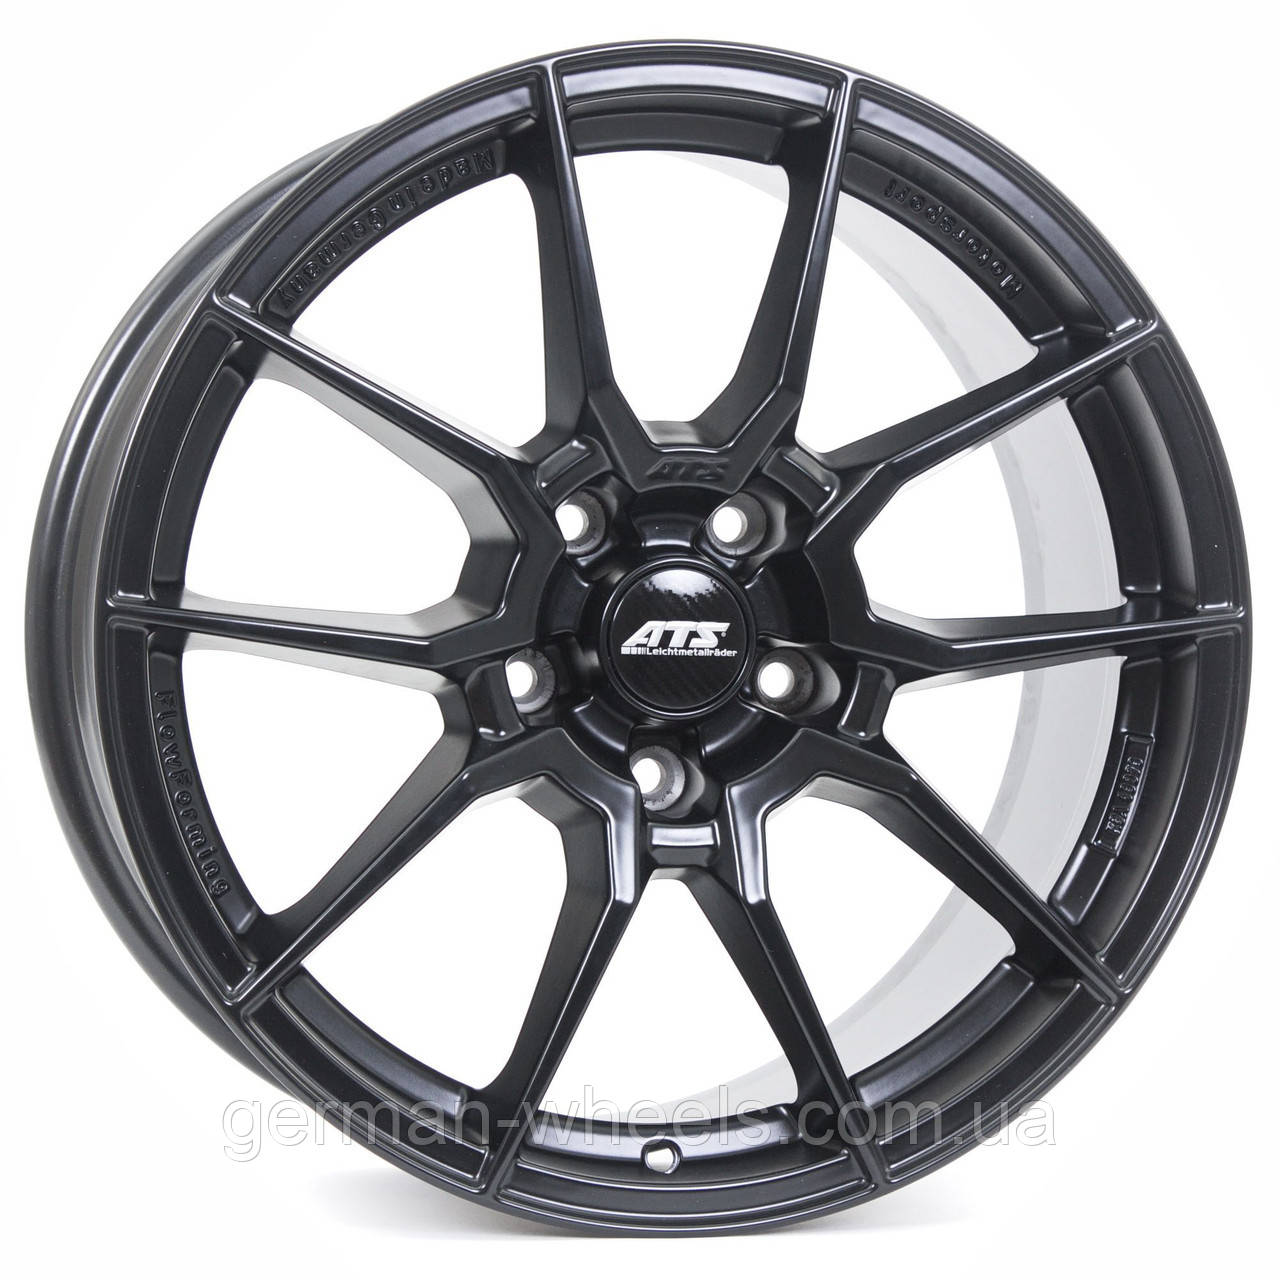 "Диски ATS (АТС) модель RACELIGHT цвет Racing-black параметры 8.5J x 19"" 5 x 114.3 ET 45"